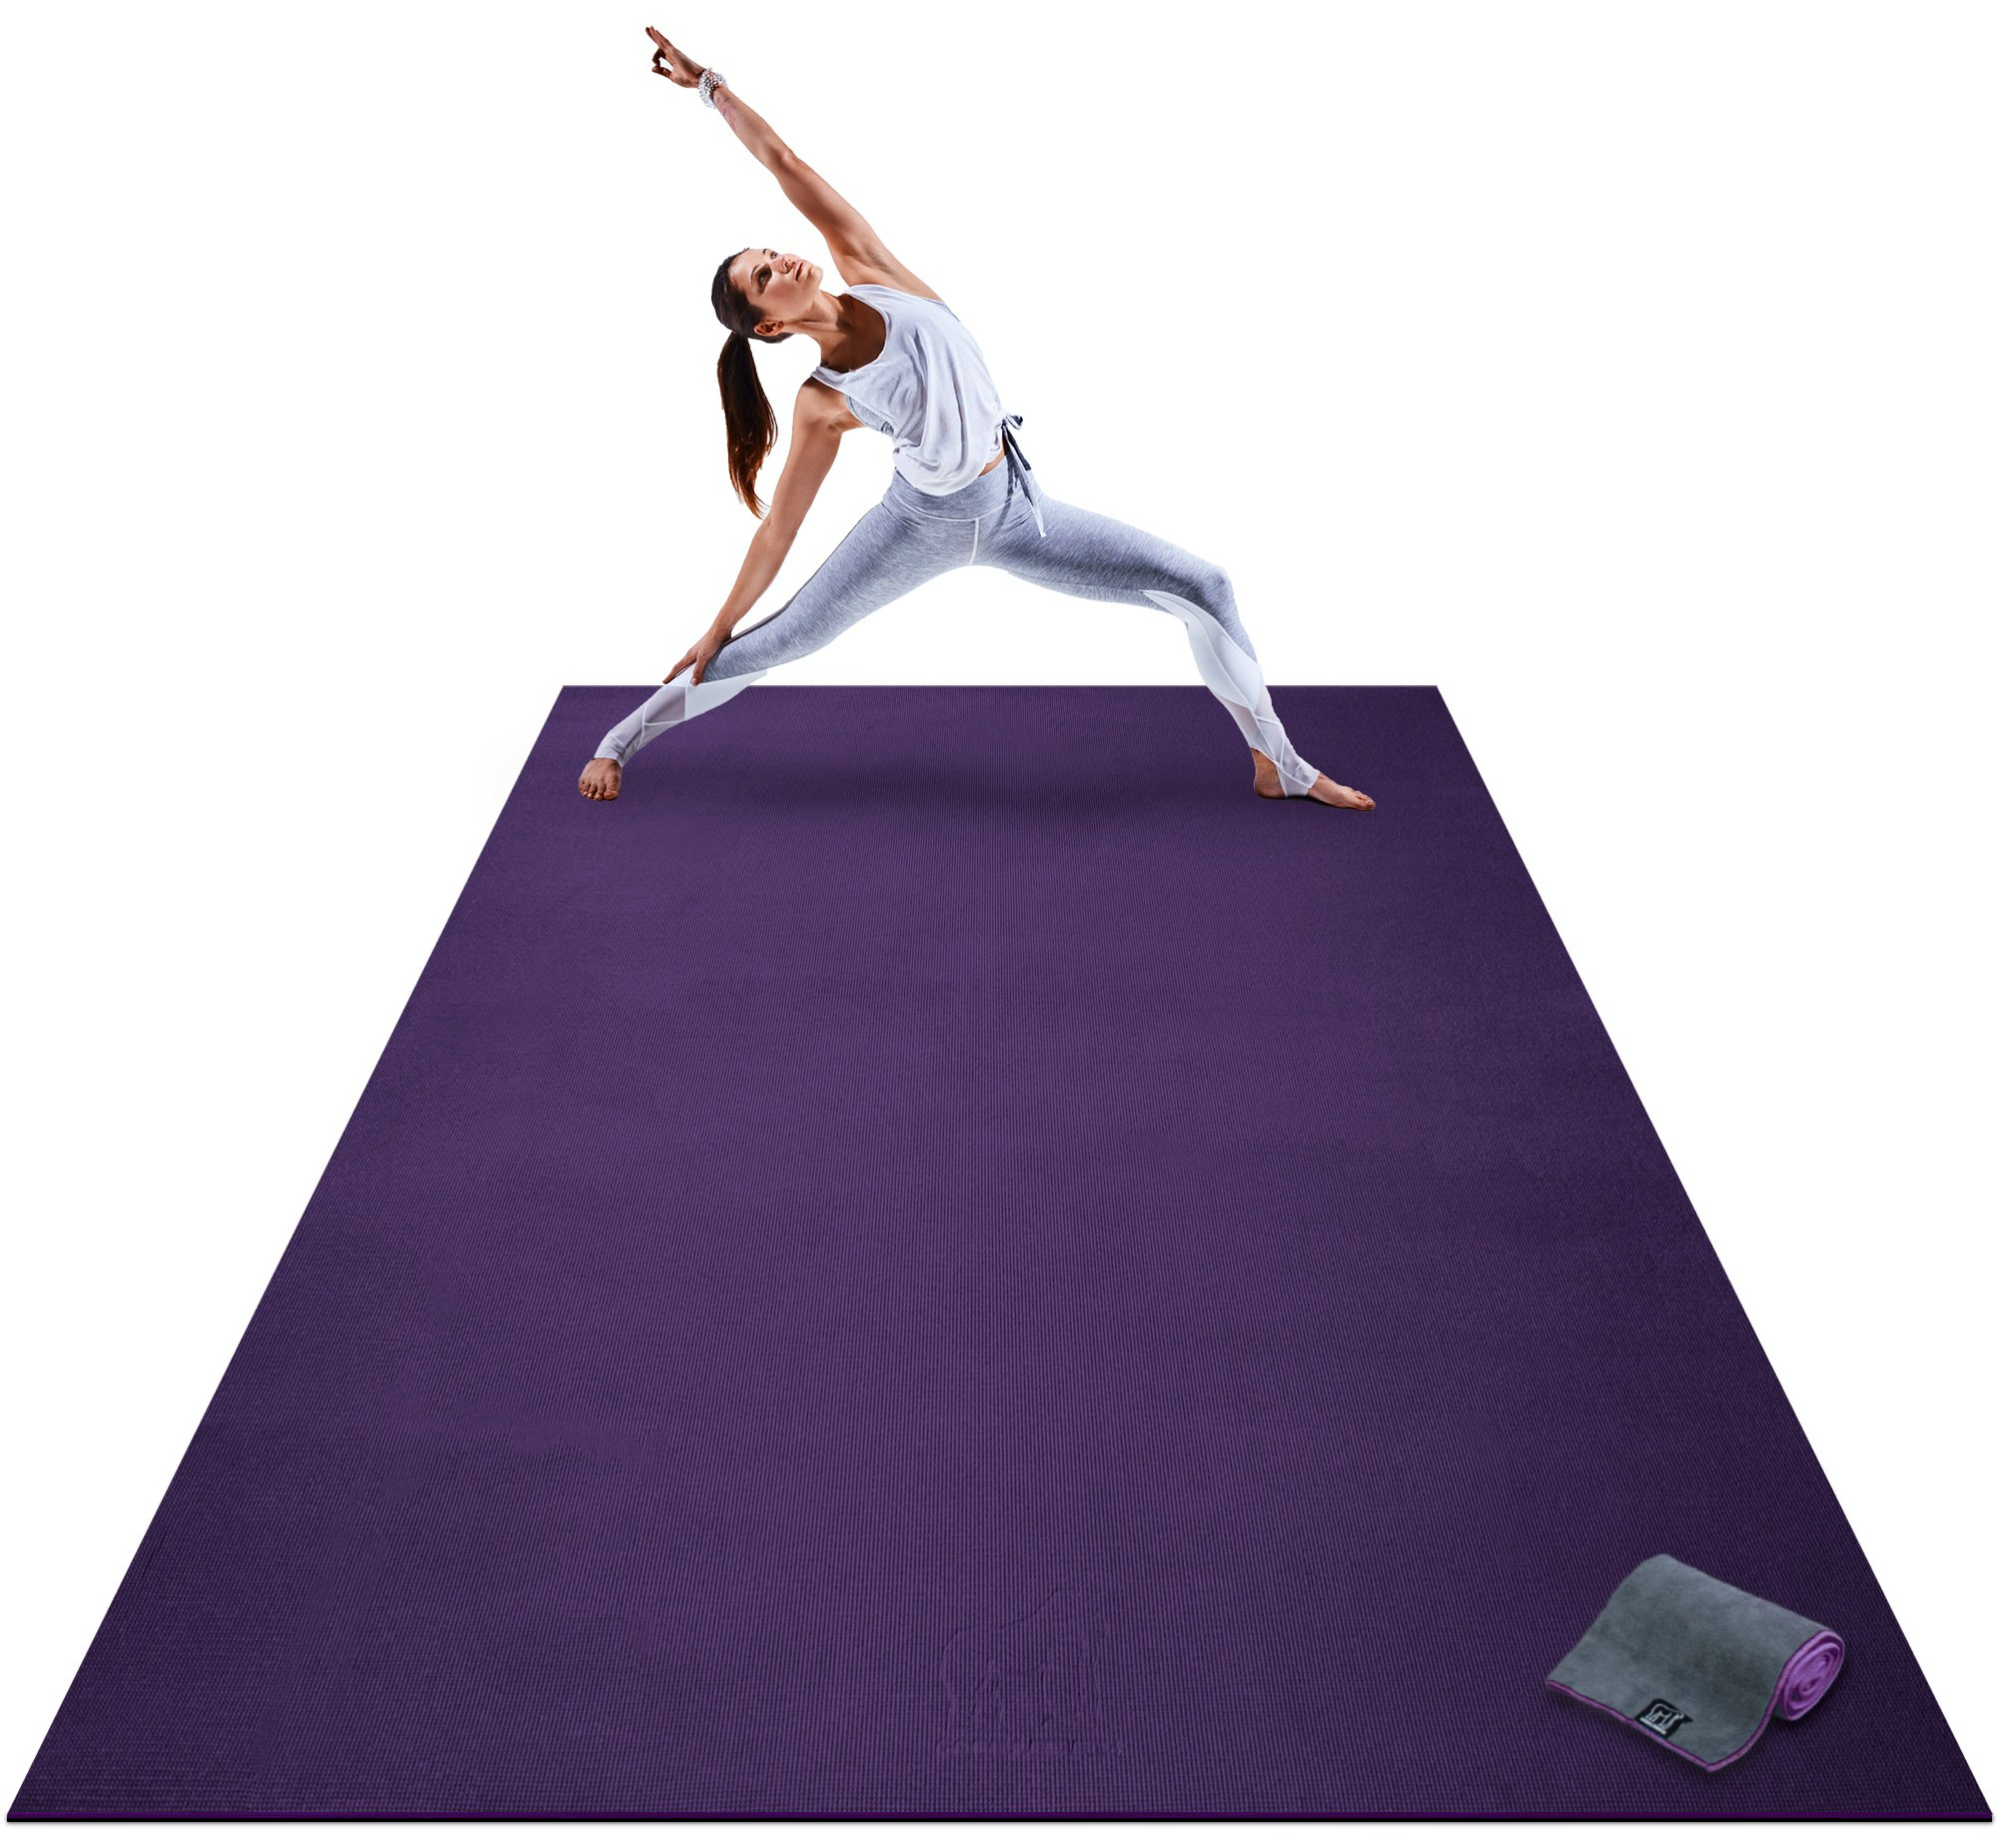 Premium Extra Large Yoga Mat - 9' x 6' x 8mm Extra Thick & Comfortable, Non-Toxic, Non-Slip, Barefoot Exercise Mat - Yoga, Stretching, Cardio Workout Mats for Home Gym Flooring (108'' Long x 72'' Wide)